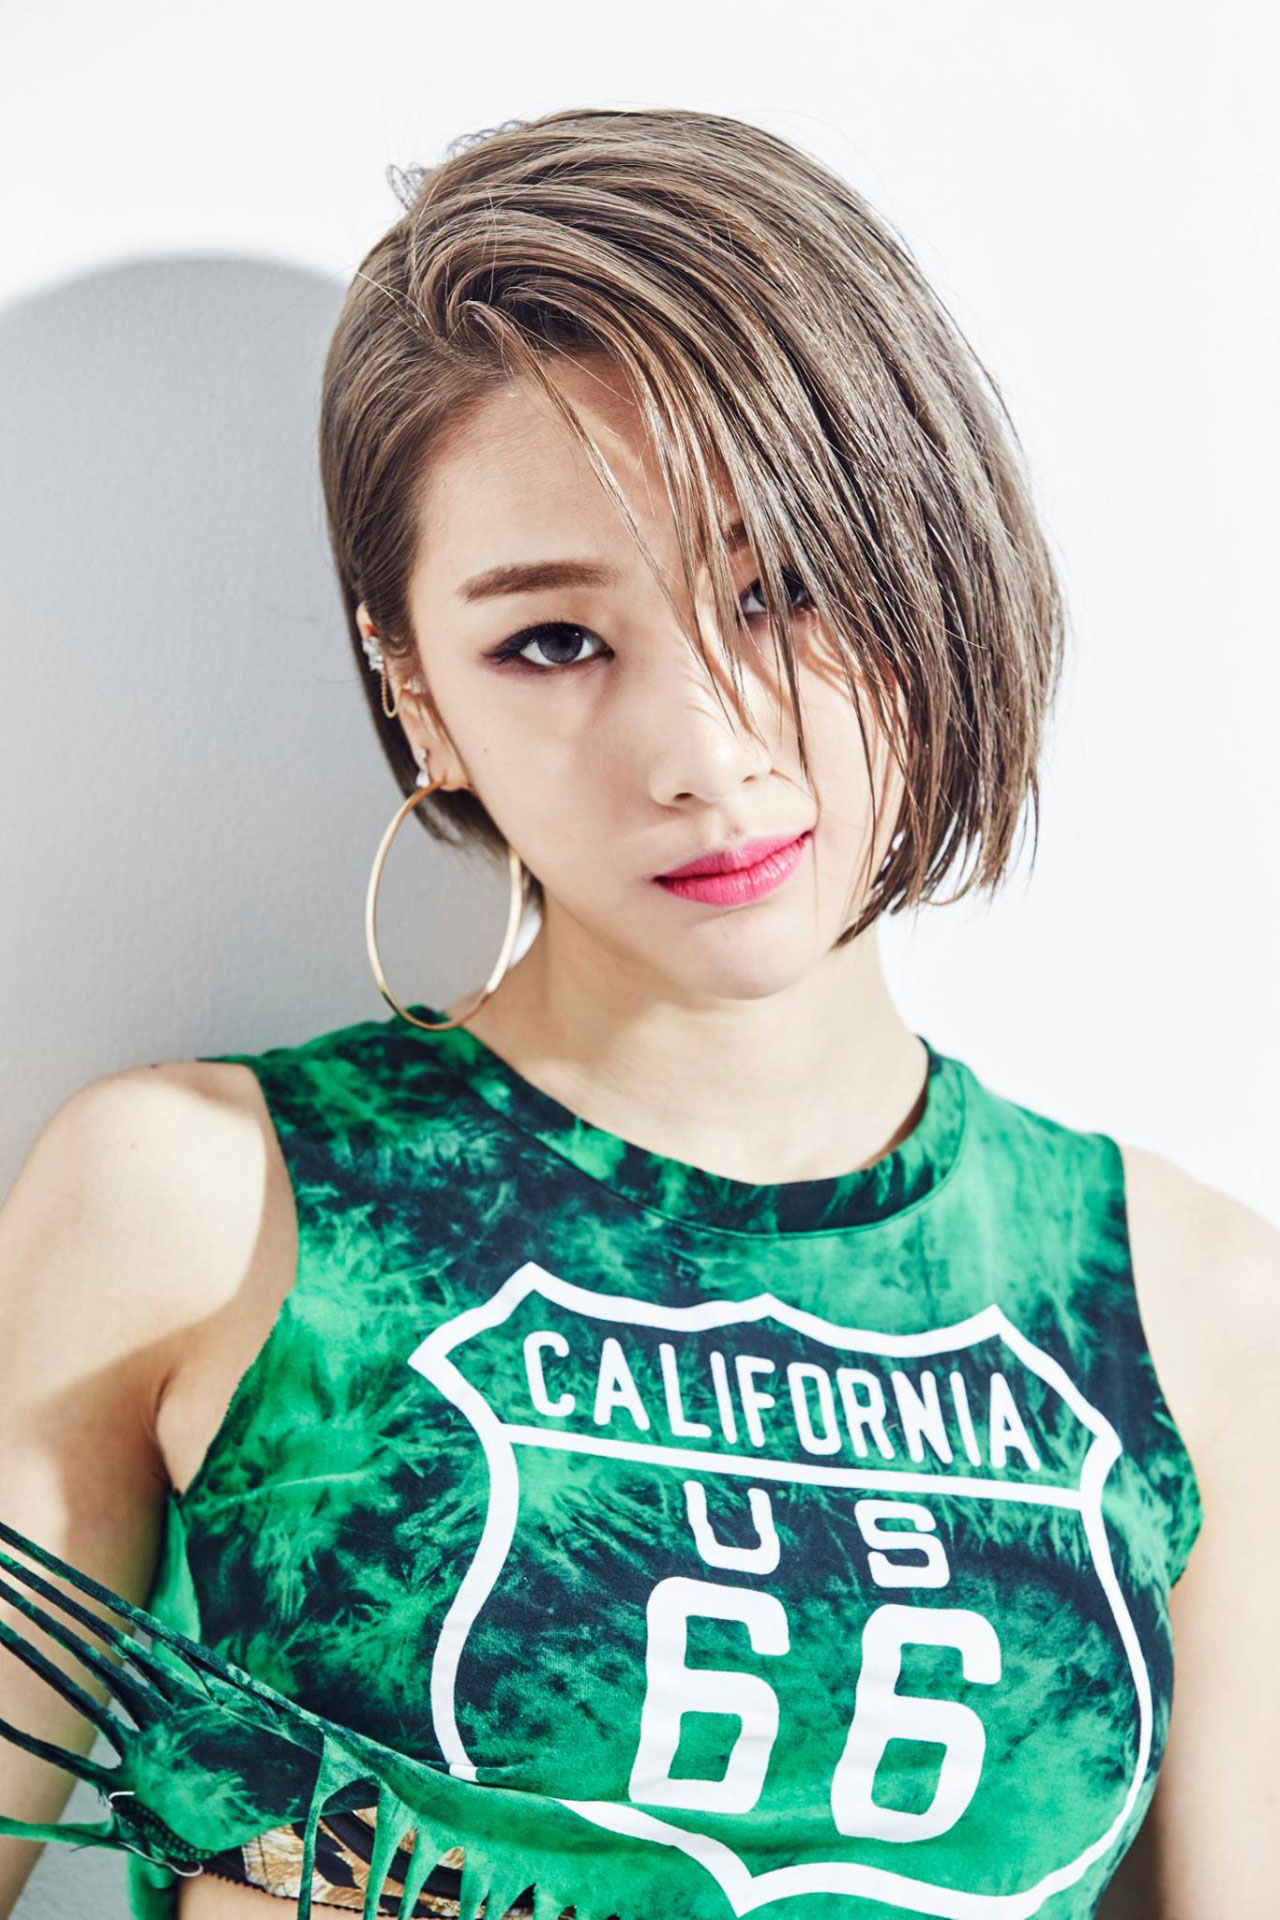 Rania Hyeme Demonstrate mini album